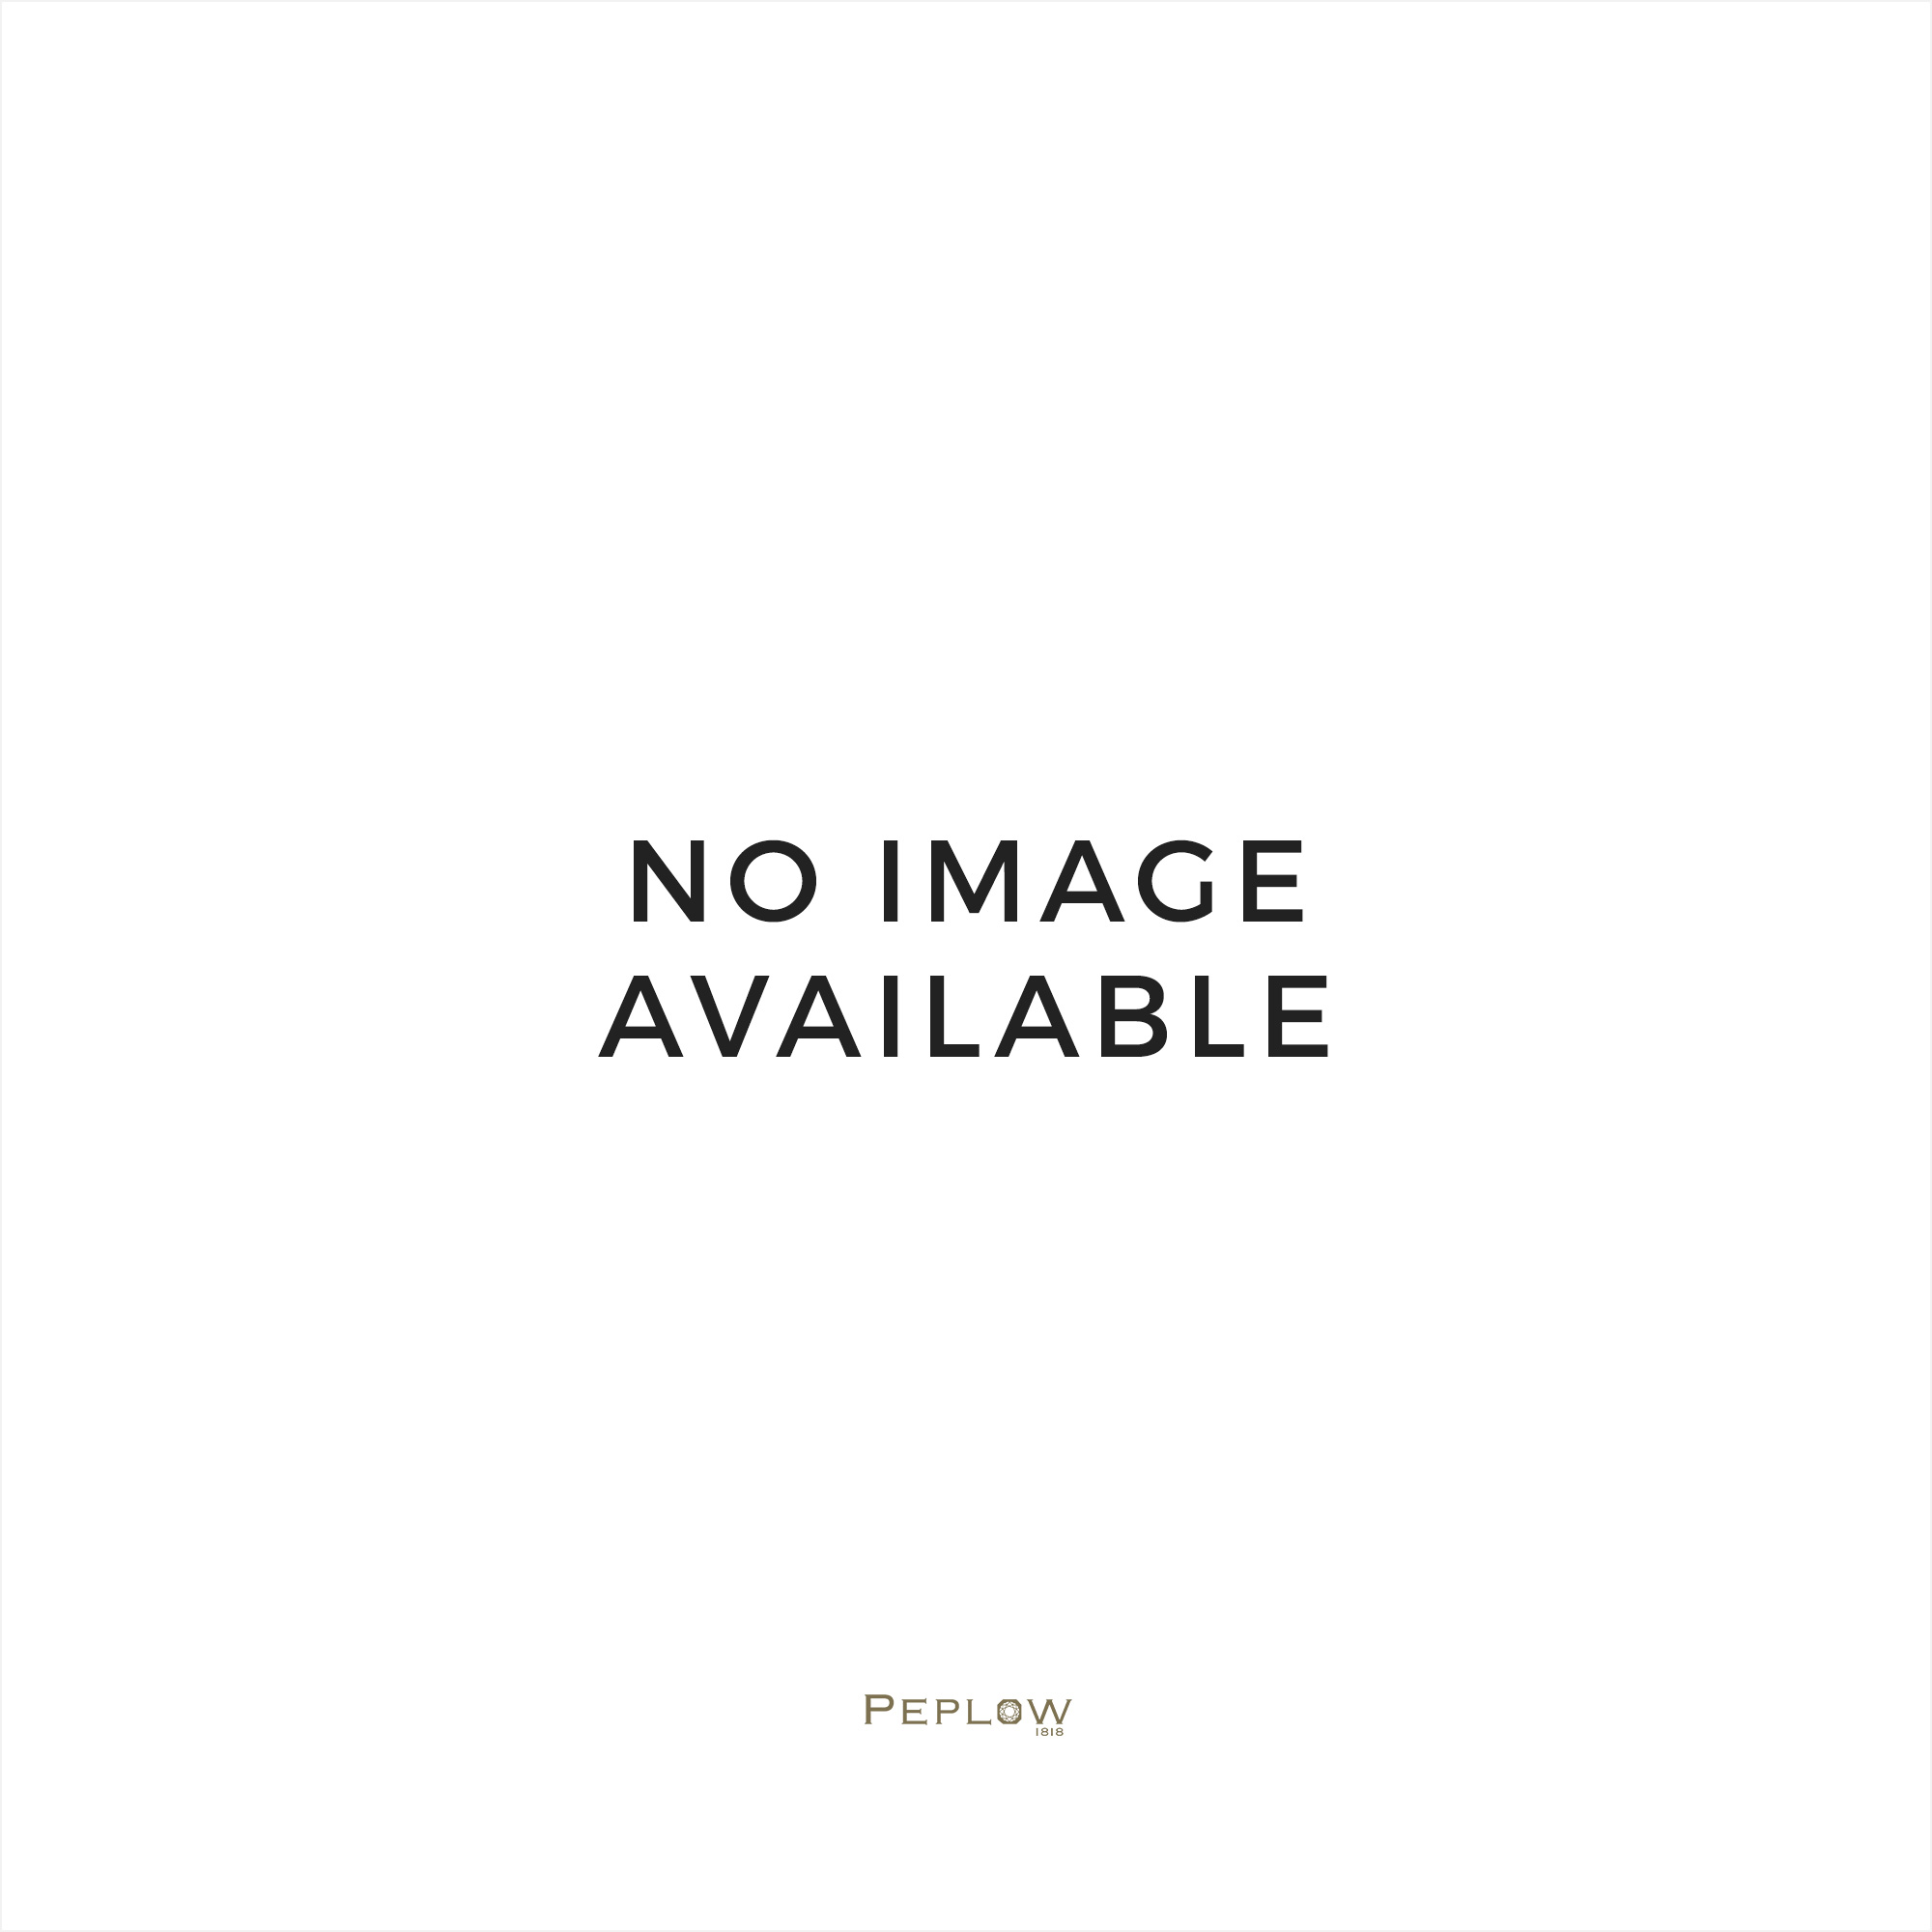 Citizen Watches Citizen Red Arrows Limited Edition Chrono Time A-T